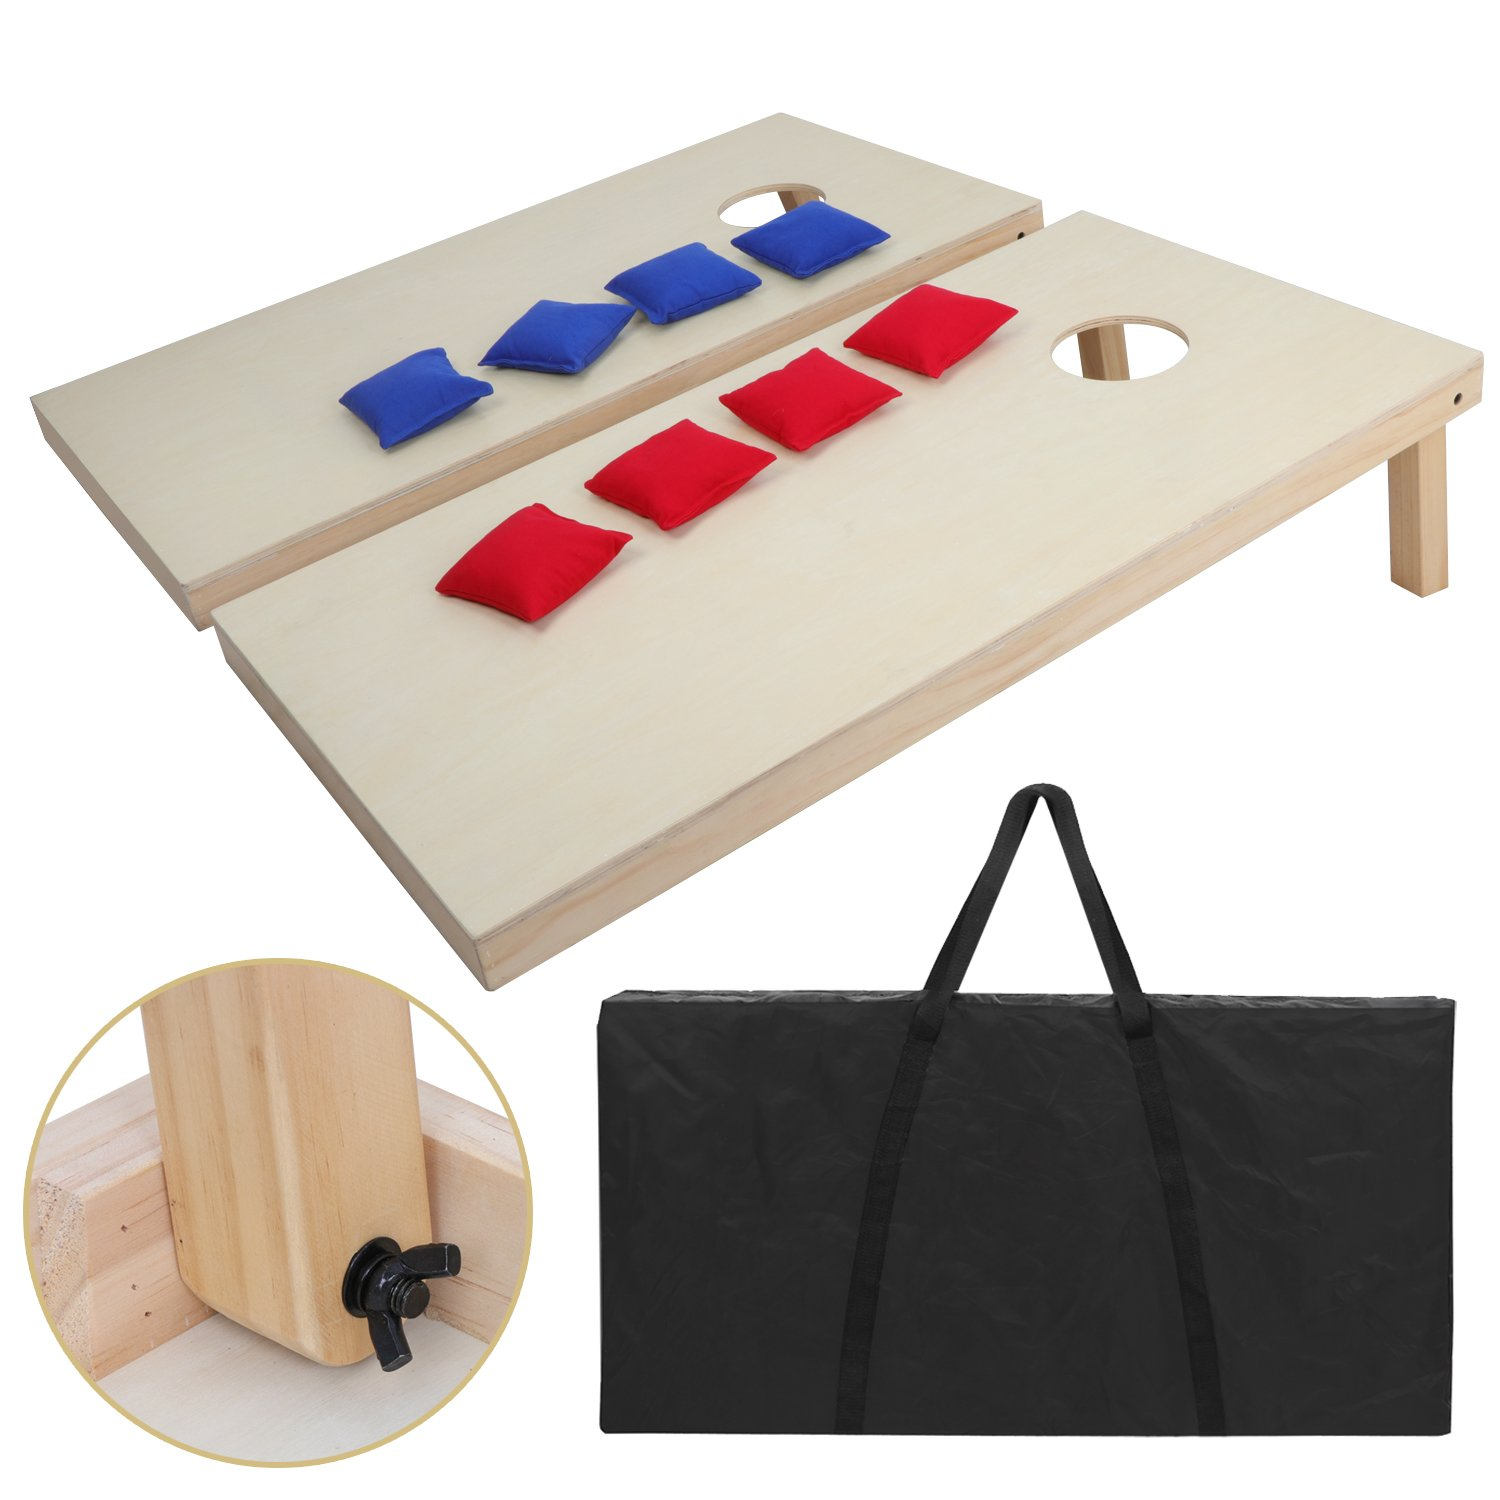 3ft X 2 ft Cornhole Bean Bag Toss Game Set Solid Wood Portable Design W/Carrying Case for Tailgate Party Backyard BBQ